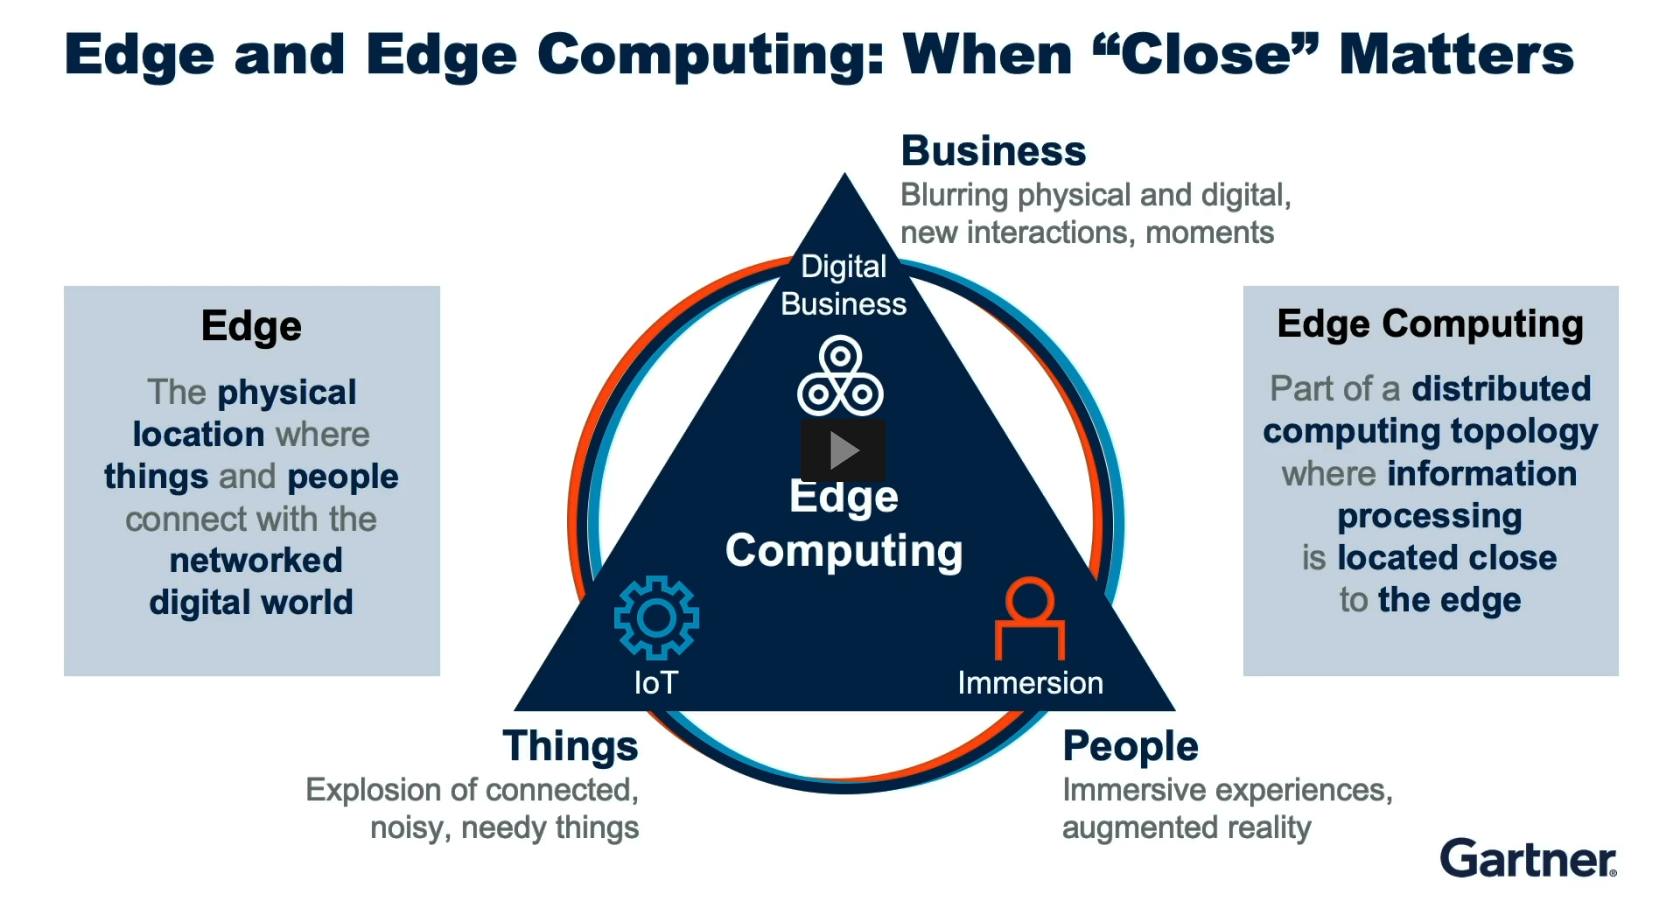 https://mediacenter.ibm.com/media/Meeting+at+the+crossroads+of+edge+computing+and+automation/1_svp7hrxp